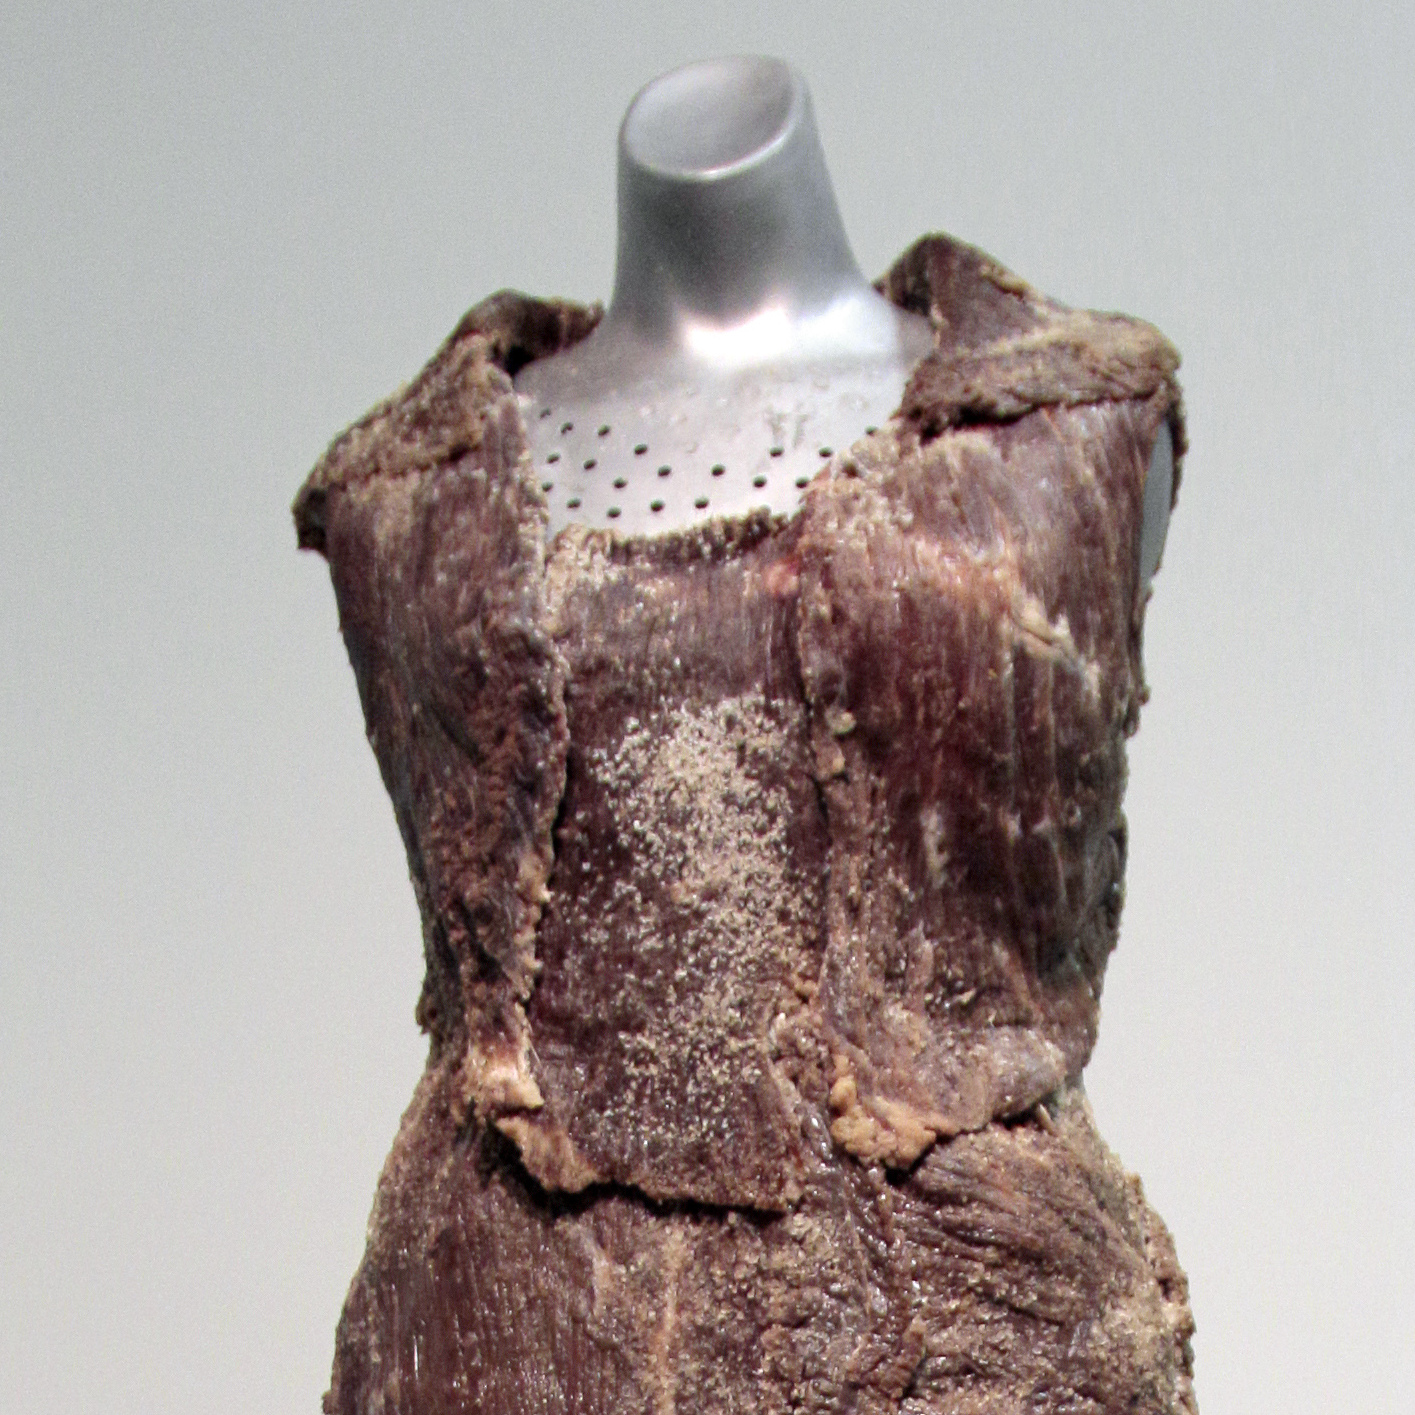 Vanitas: Flesh Dress for an Albino Anorectic, by the artist Jana Sterbak